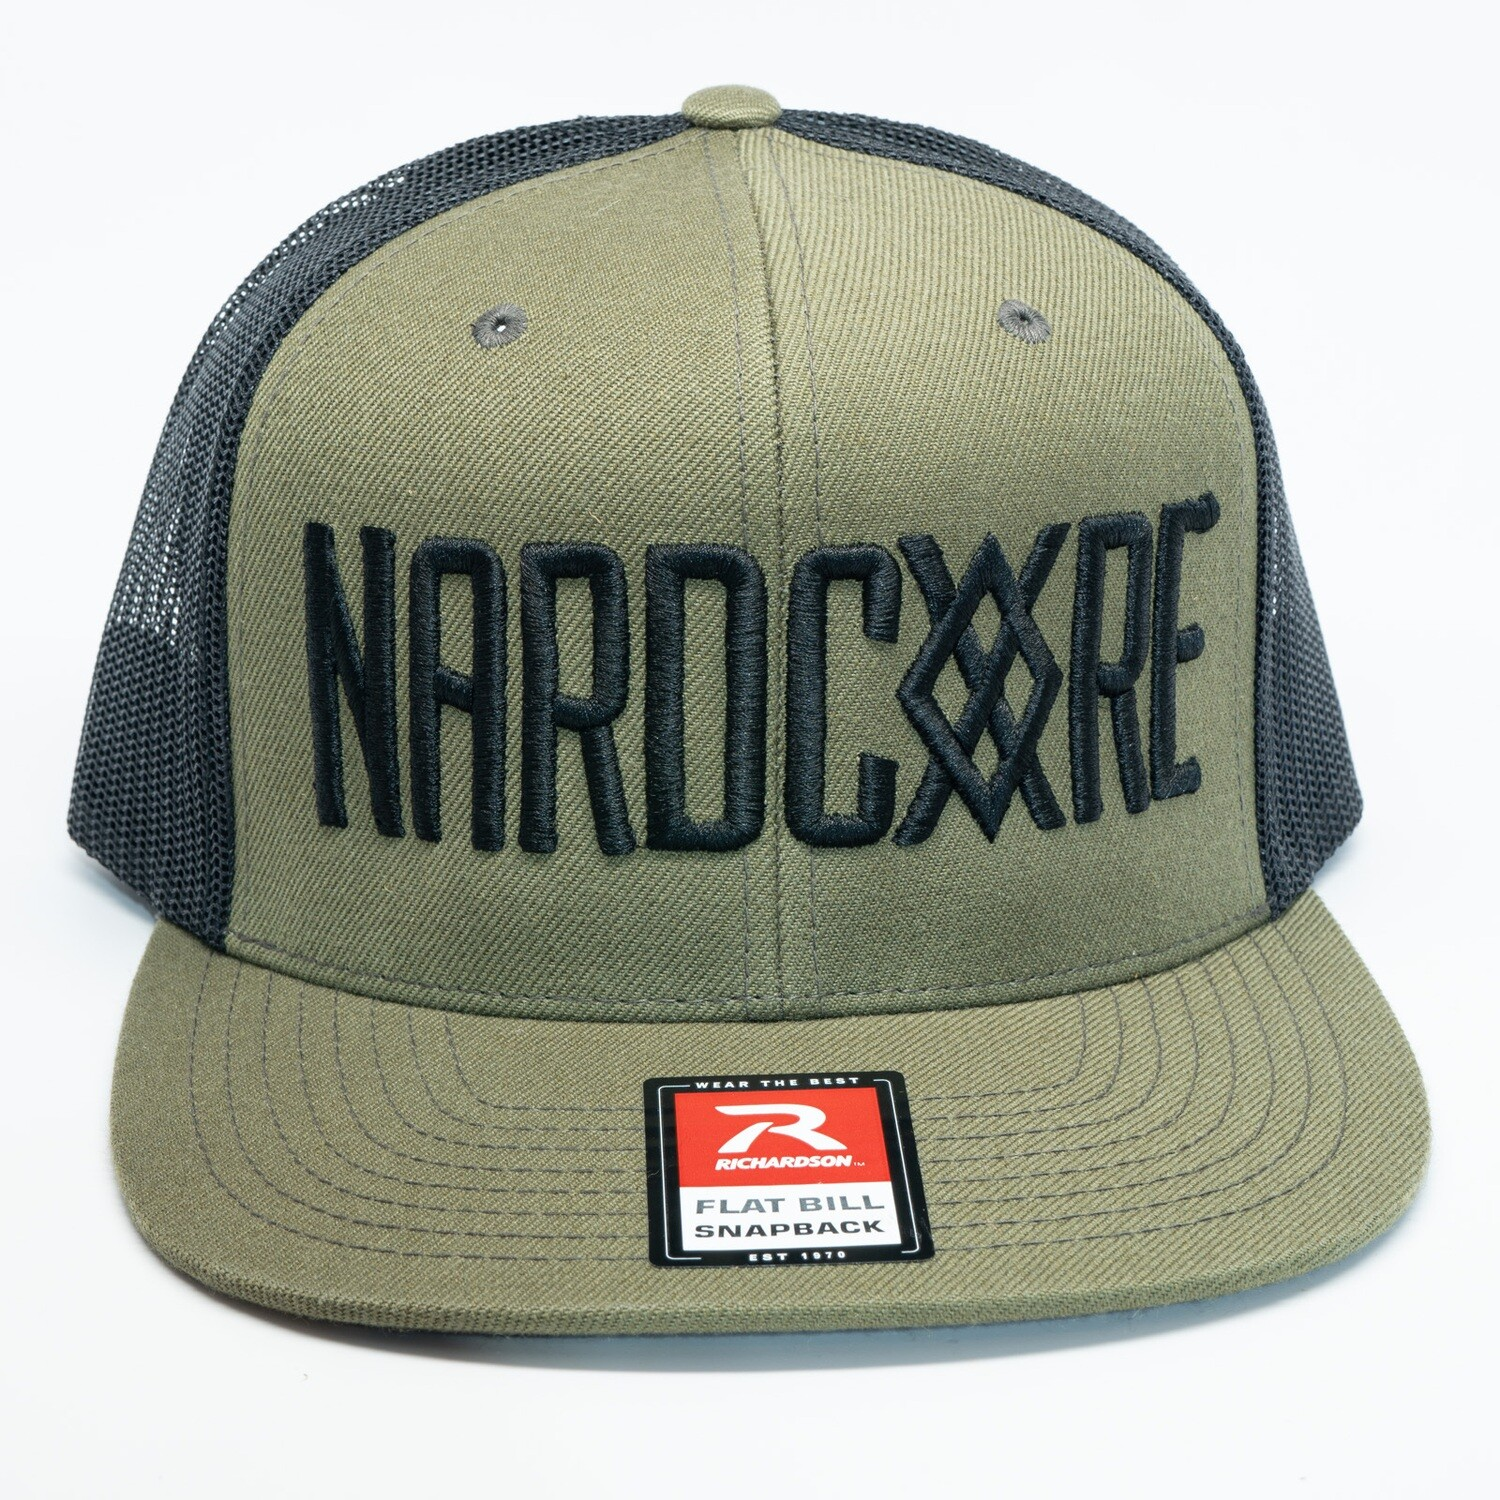 Nardcore Trucker Hat - Limited Richardson